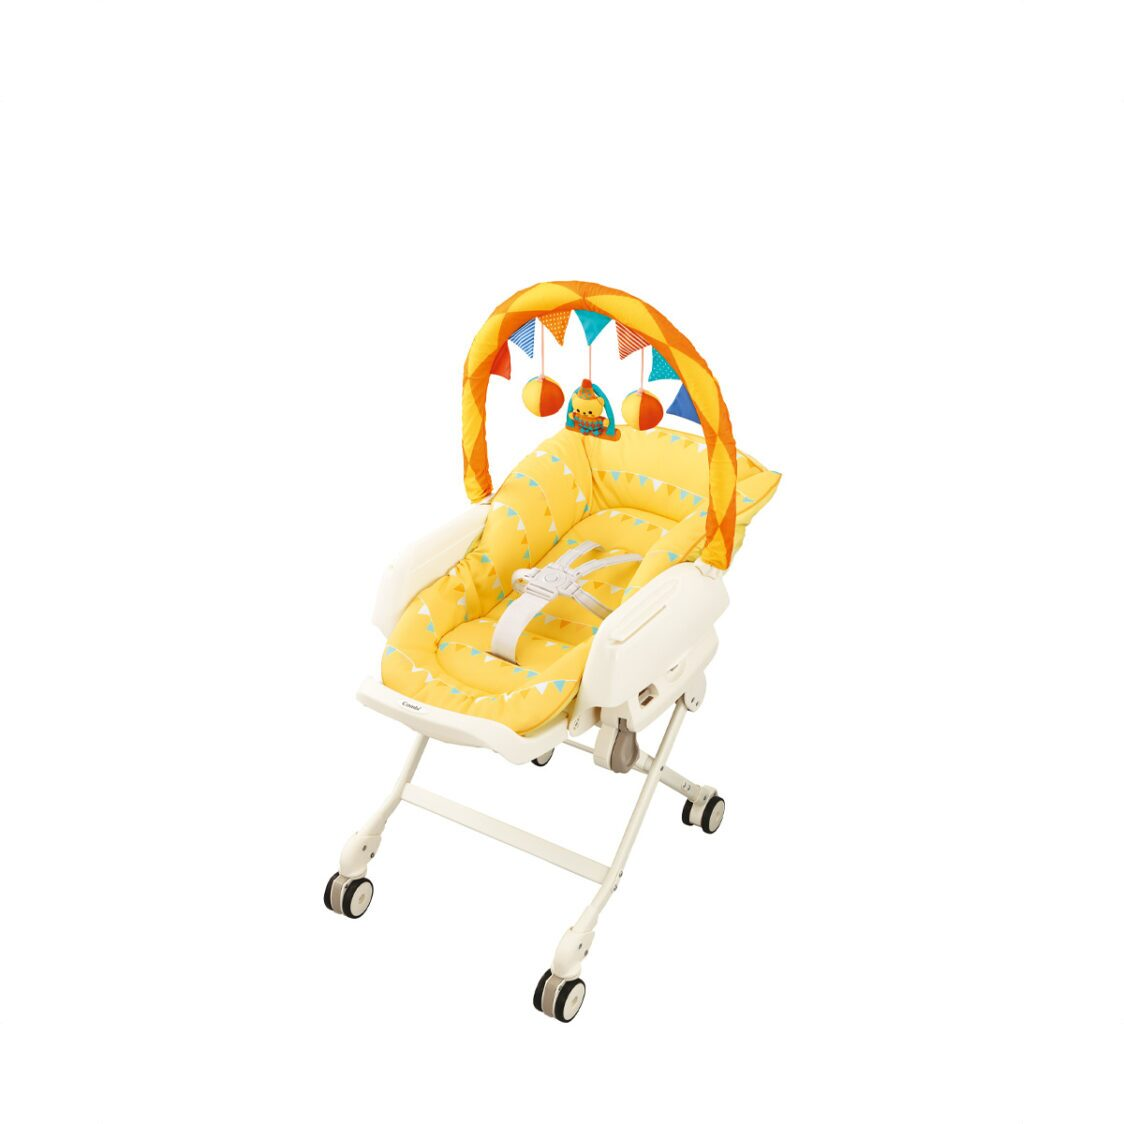 Combi Joy Circus Yellow Parenting Station New born4 Years Old 89KG